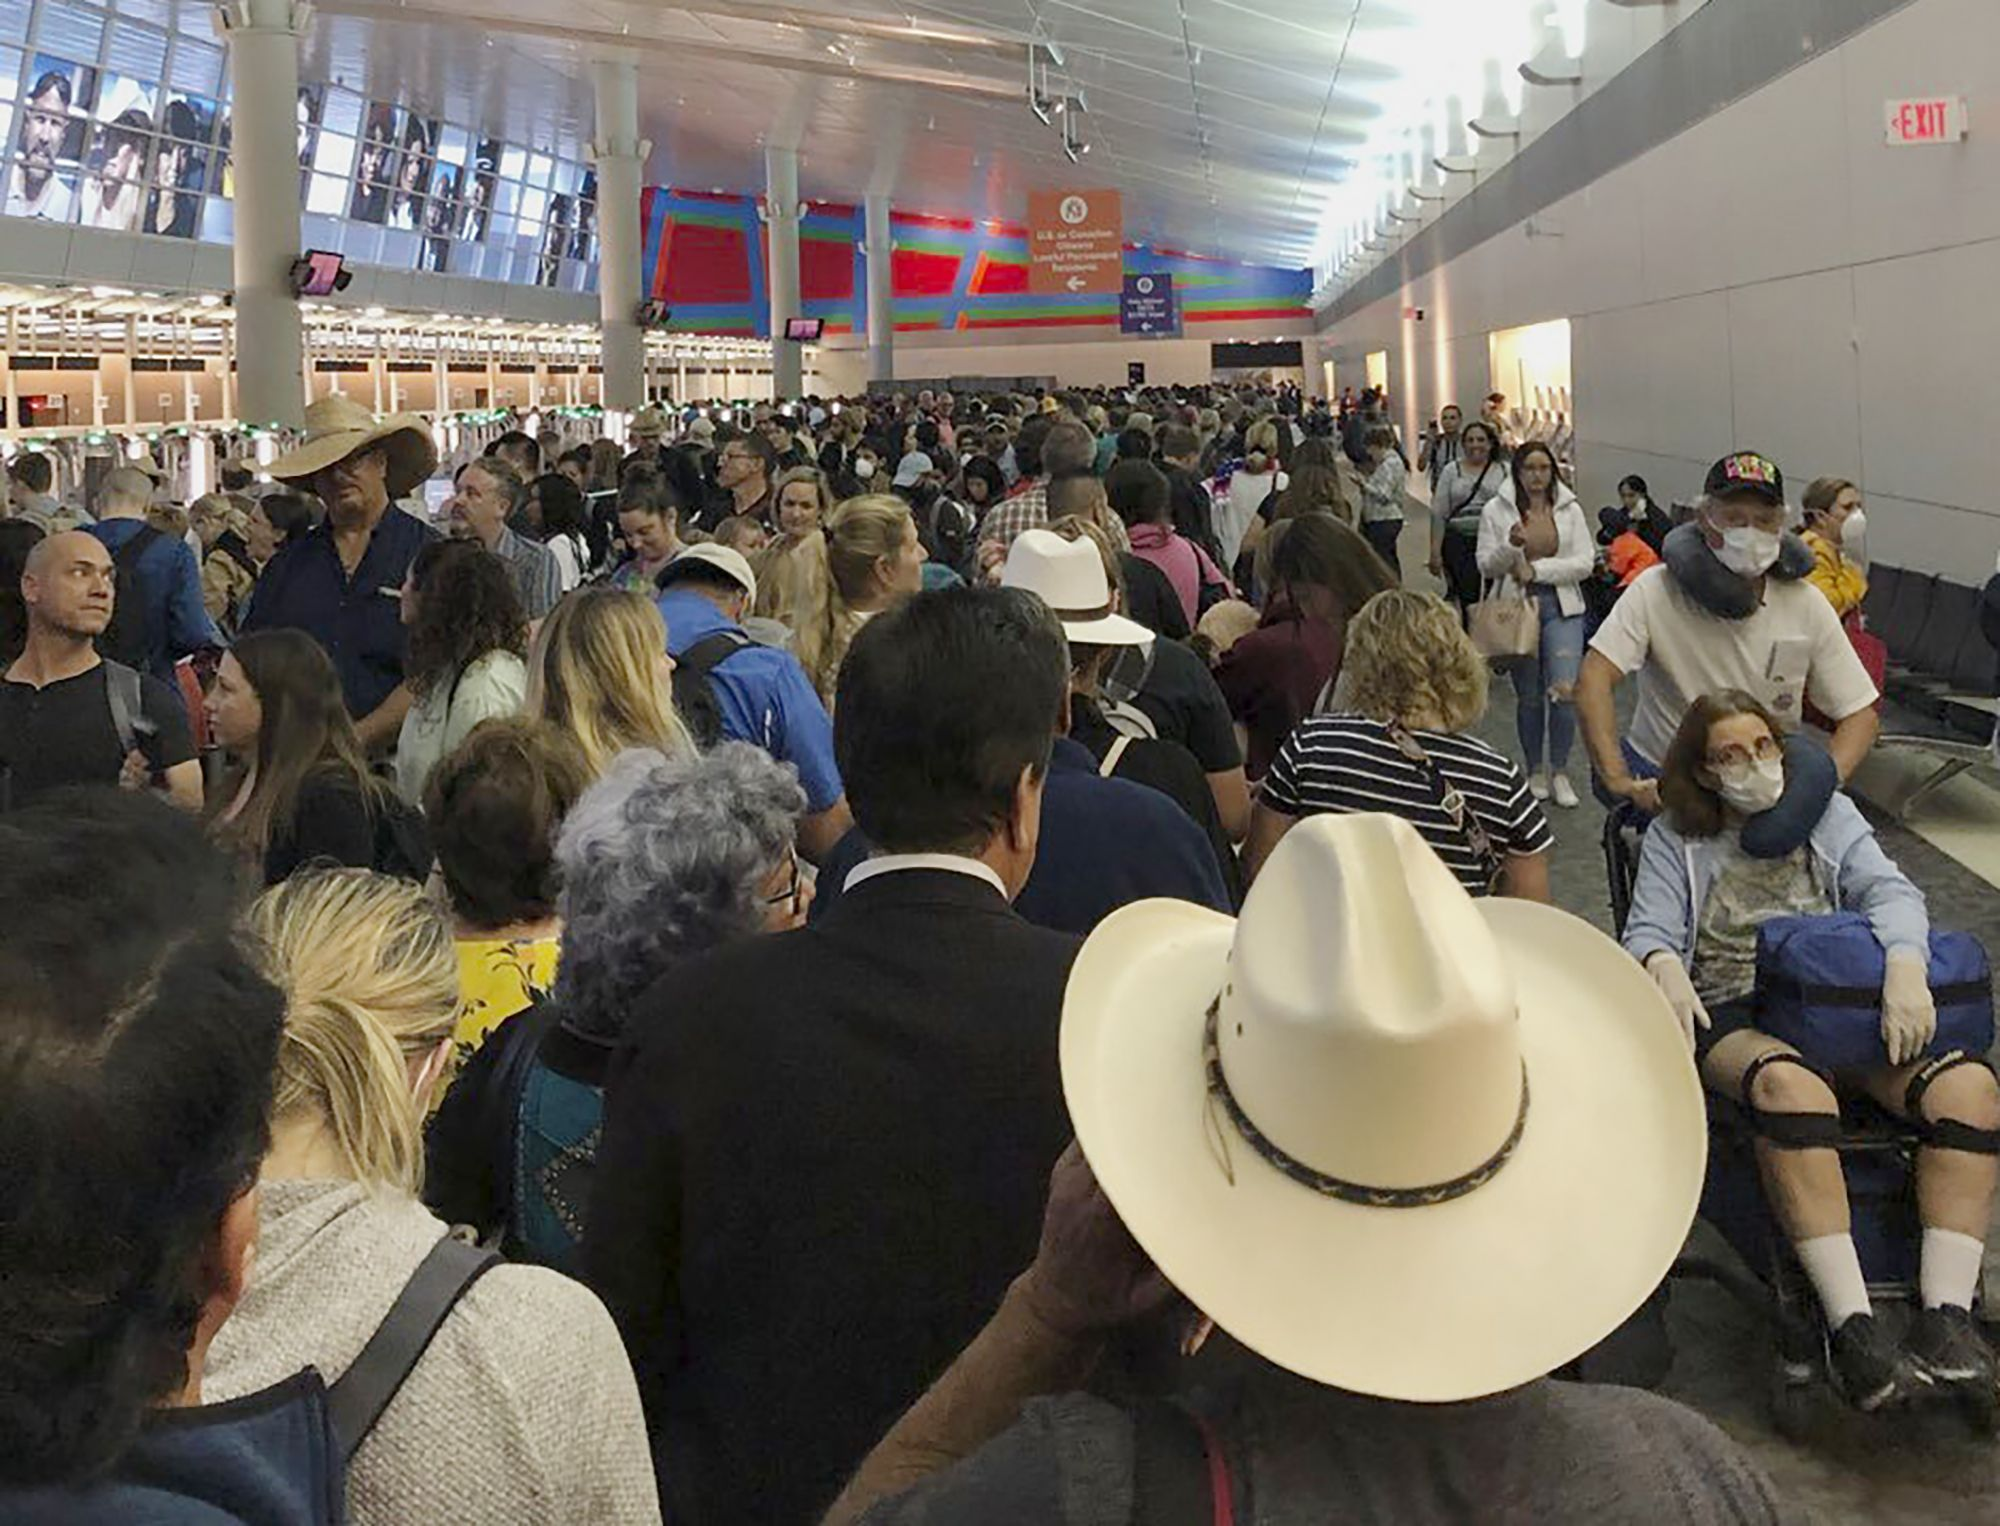 Americans return to long waits for screenings at airports